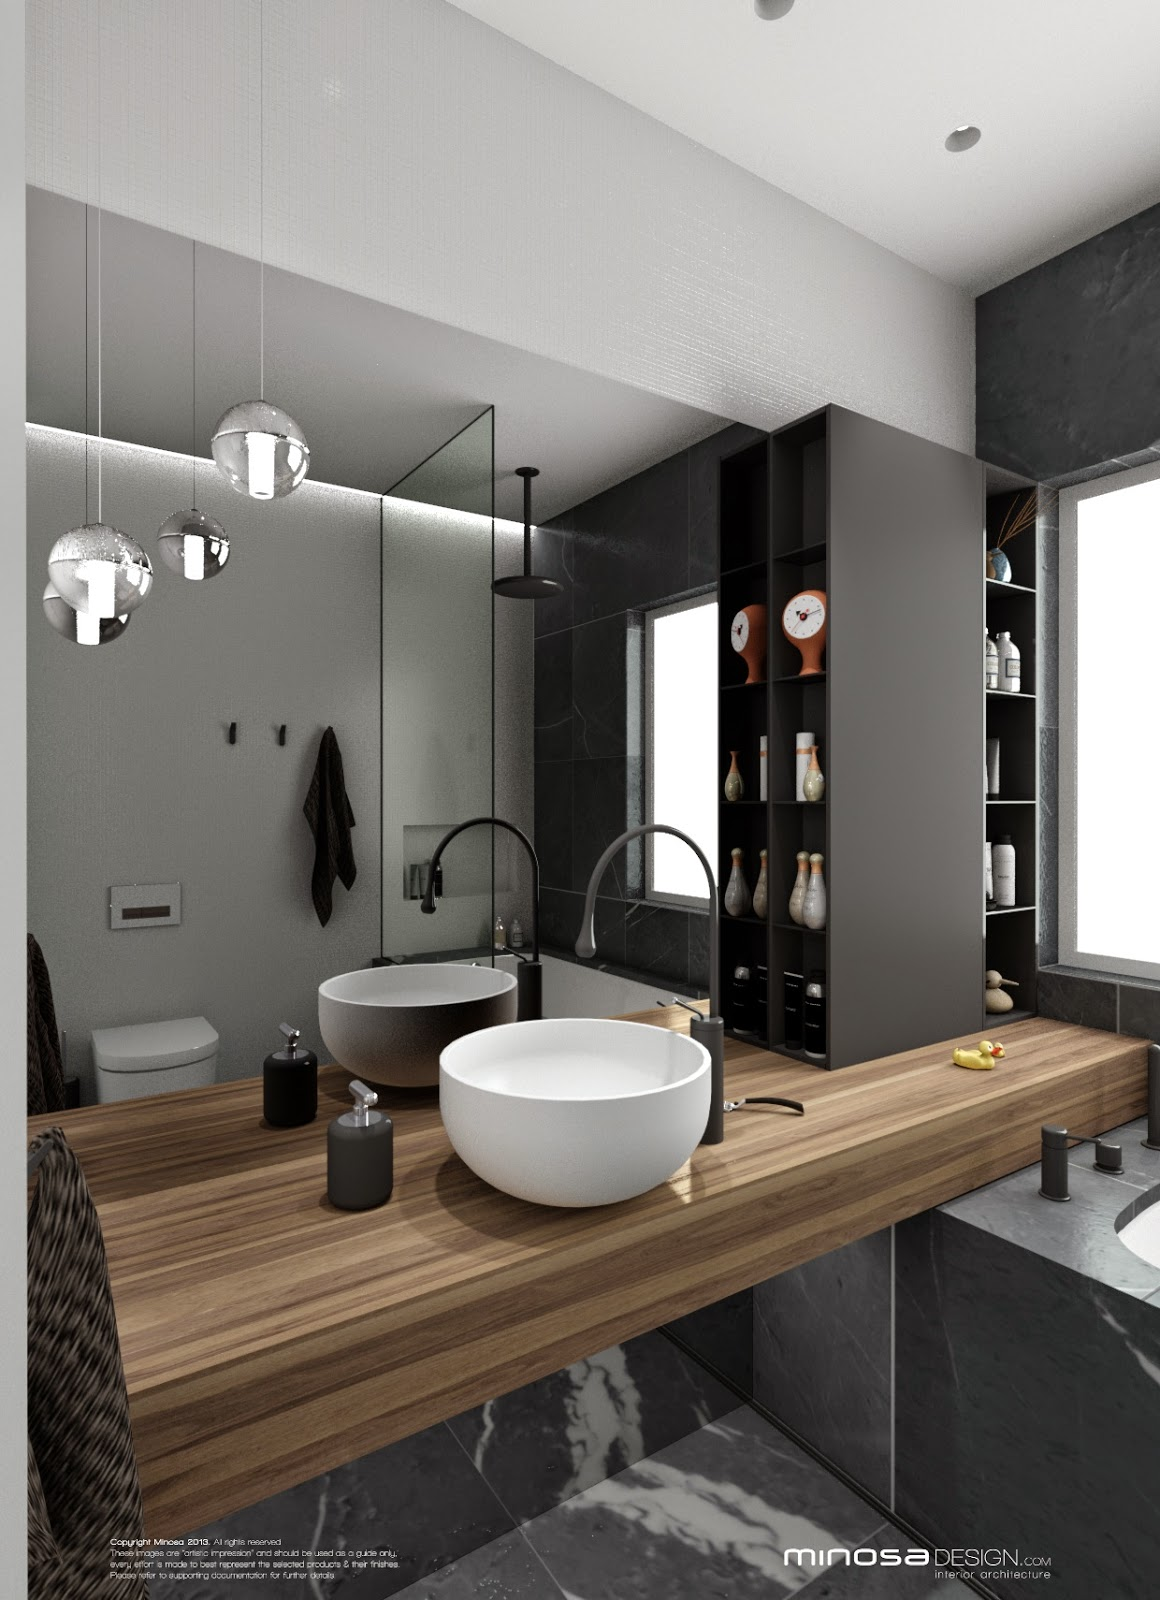 Minosa bathroom design small space feels large for Bathroom designs small space